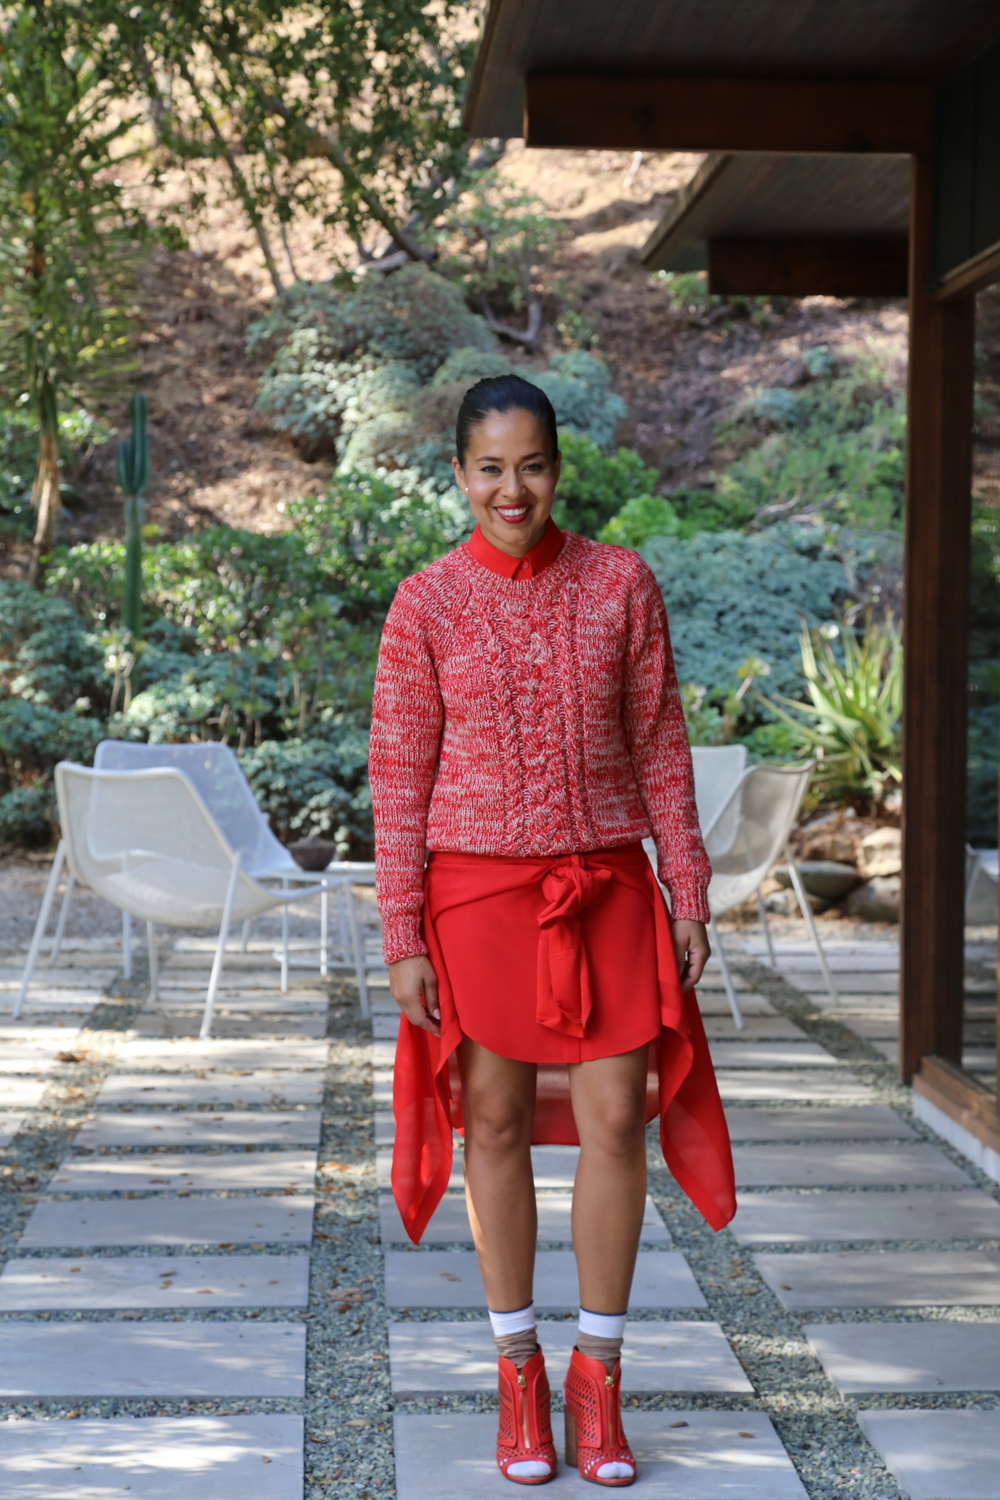 alexander-wang-shirtdress-isabel-marant-red-sweater-los-angeles.jpg